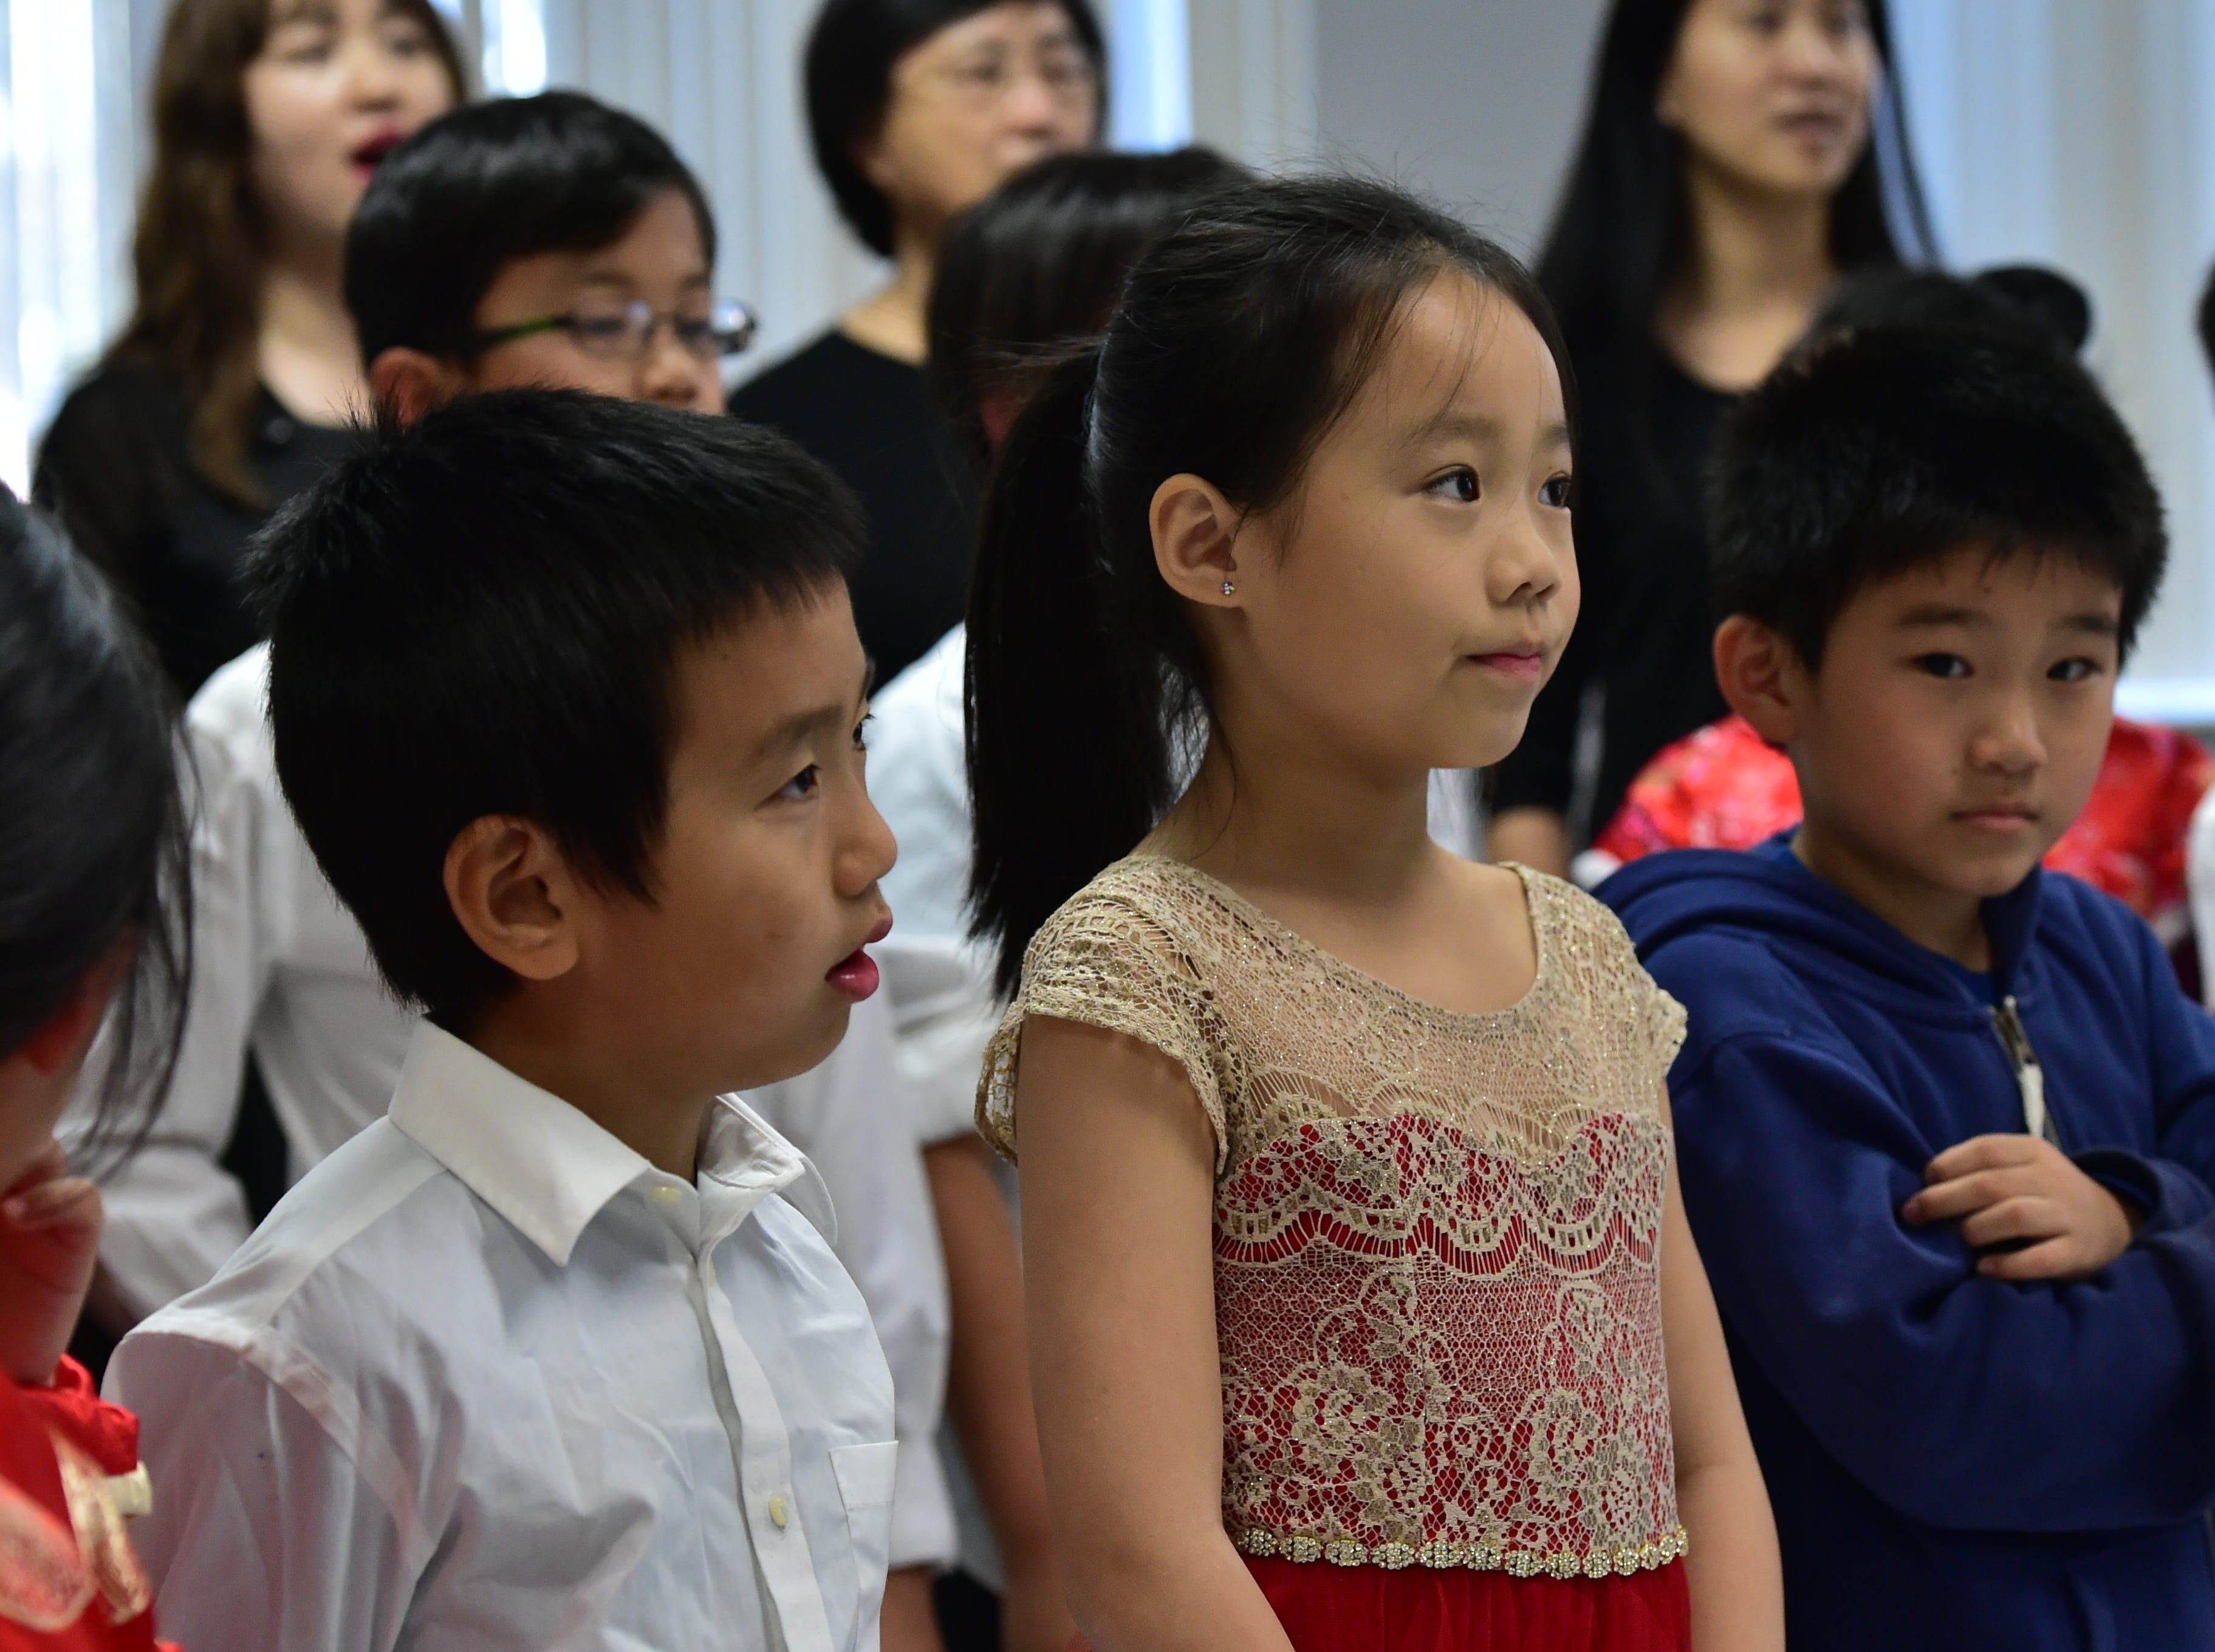 Students from the Chinese School at Tougaloo College practice for the upcoming Chinese New Year events held during the Spring Festival at the Mississippi Museum Art on Feb. 2 in Jackson. Sunday, Jan. 27, 2019